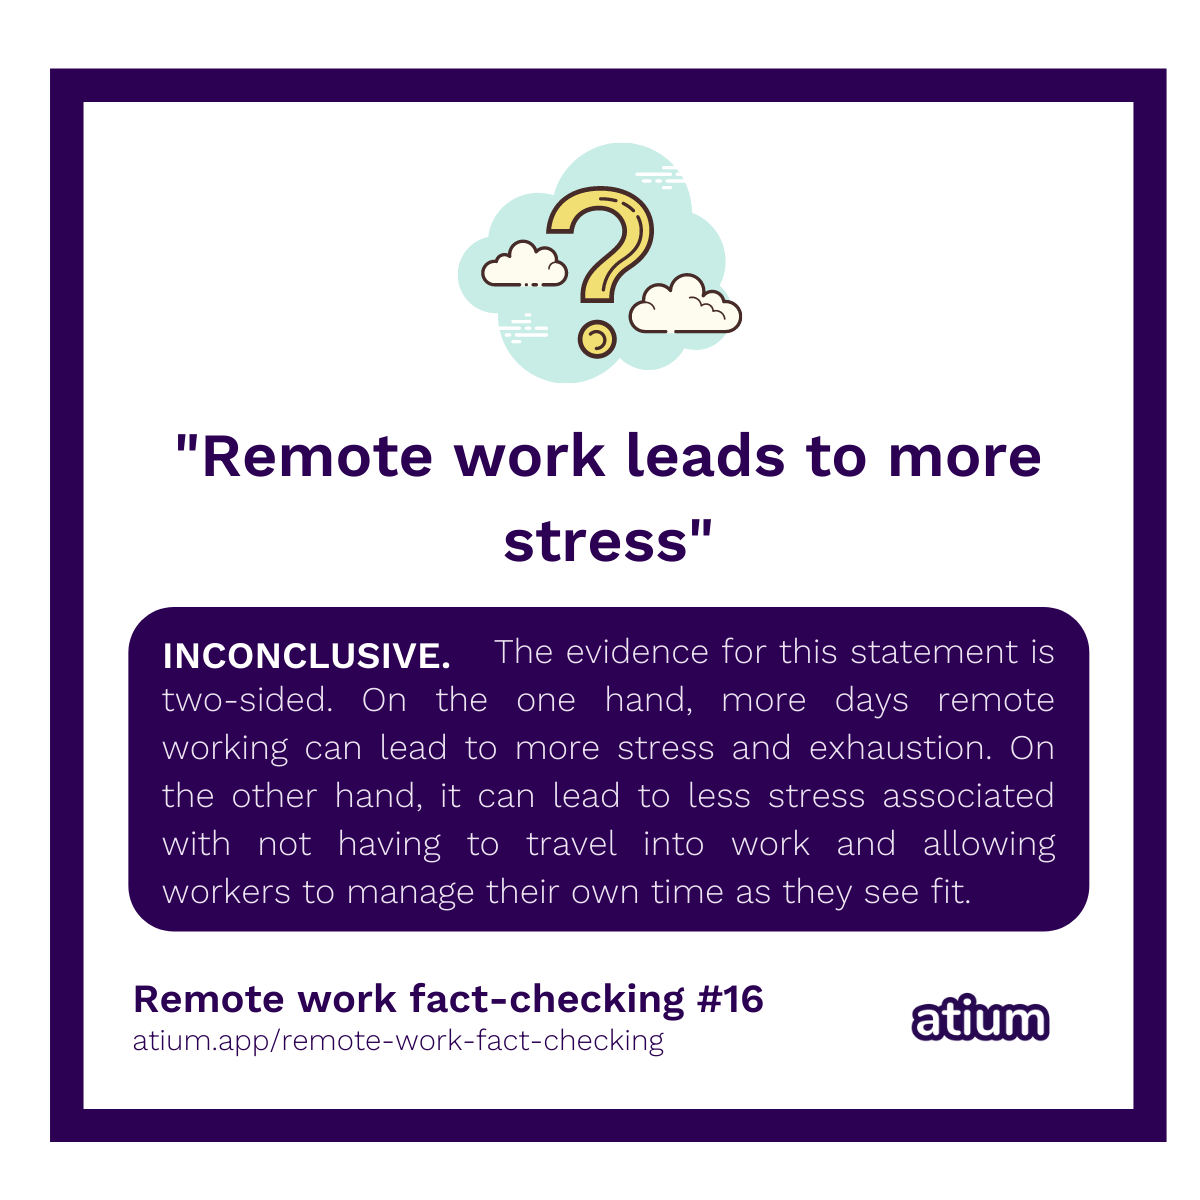 Remote work leads to more stress